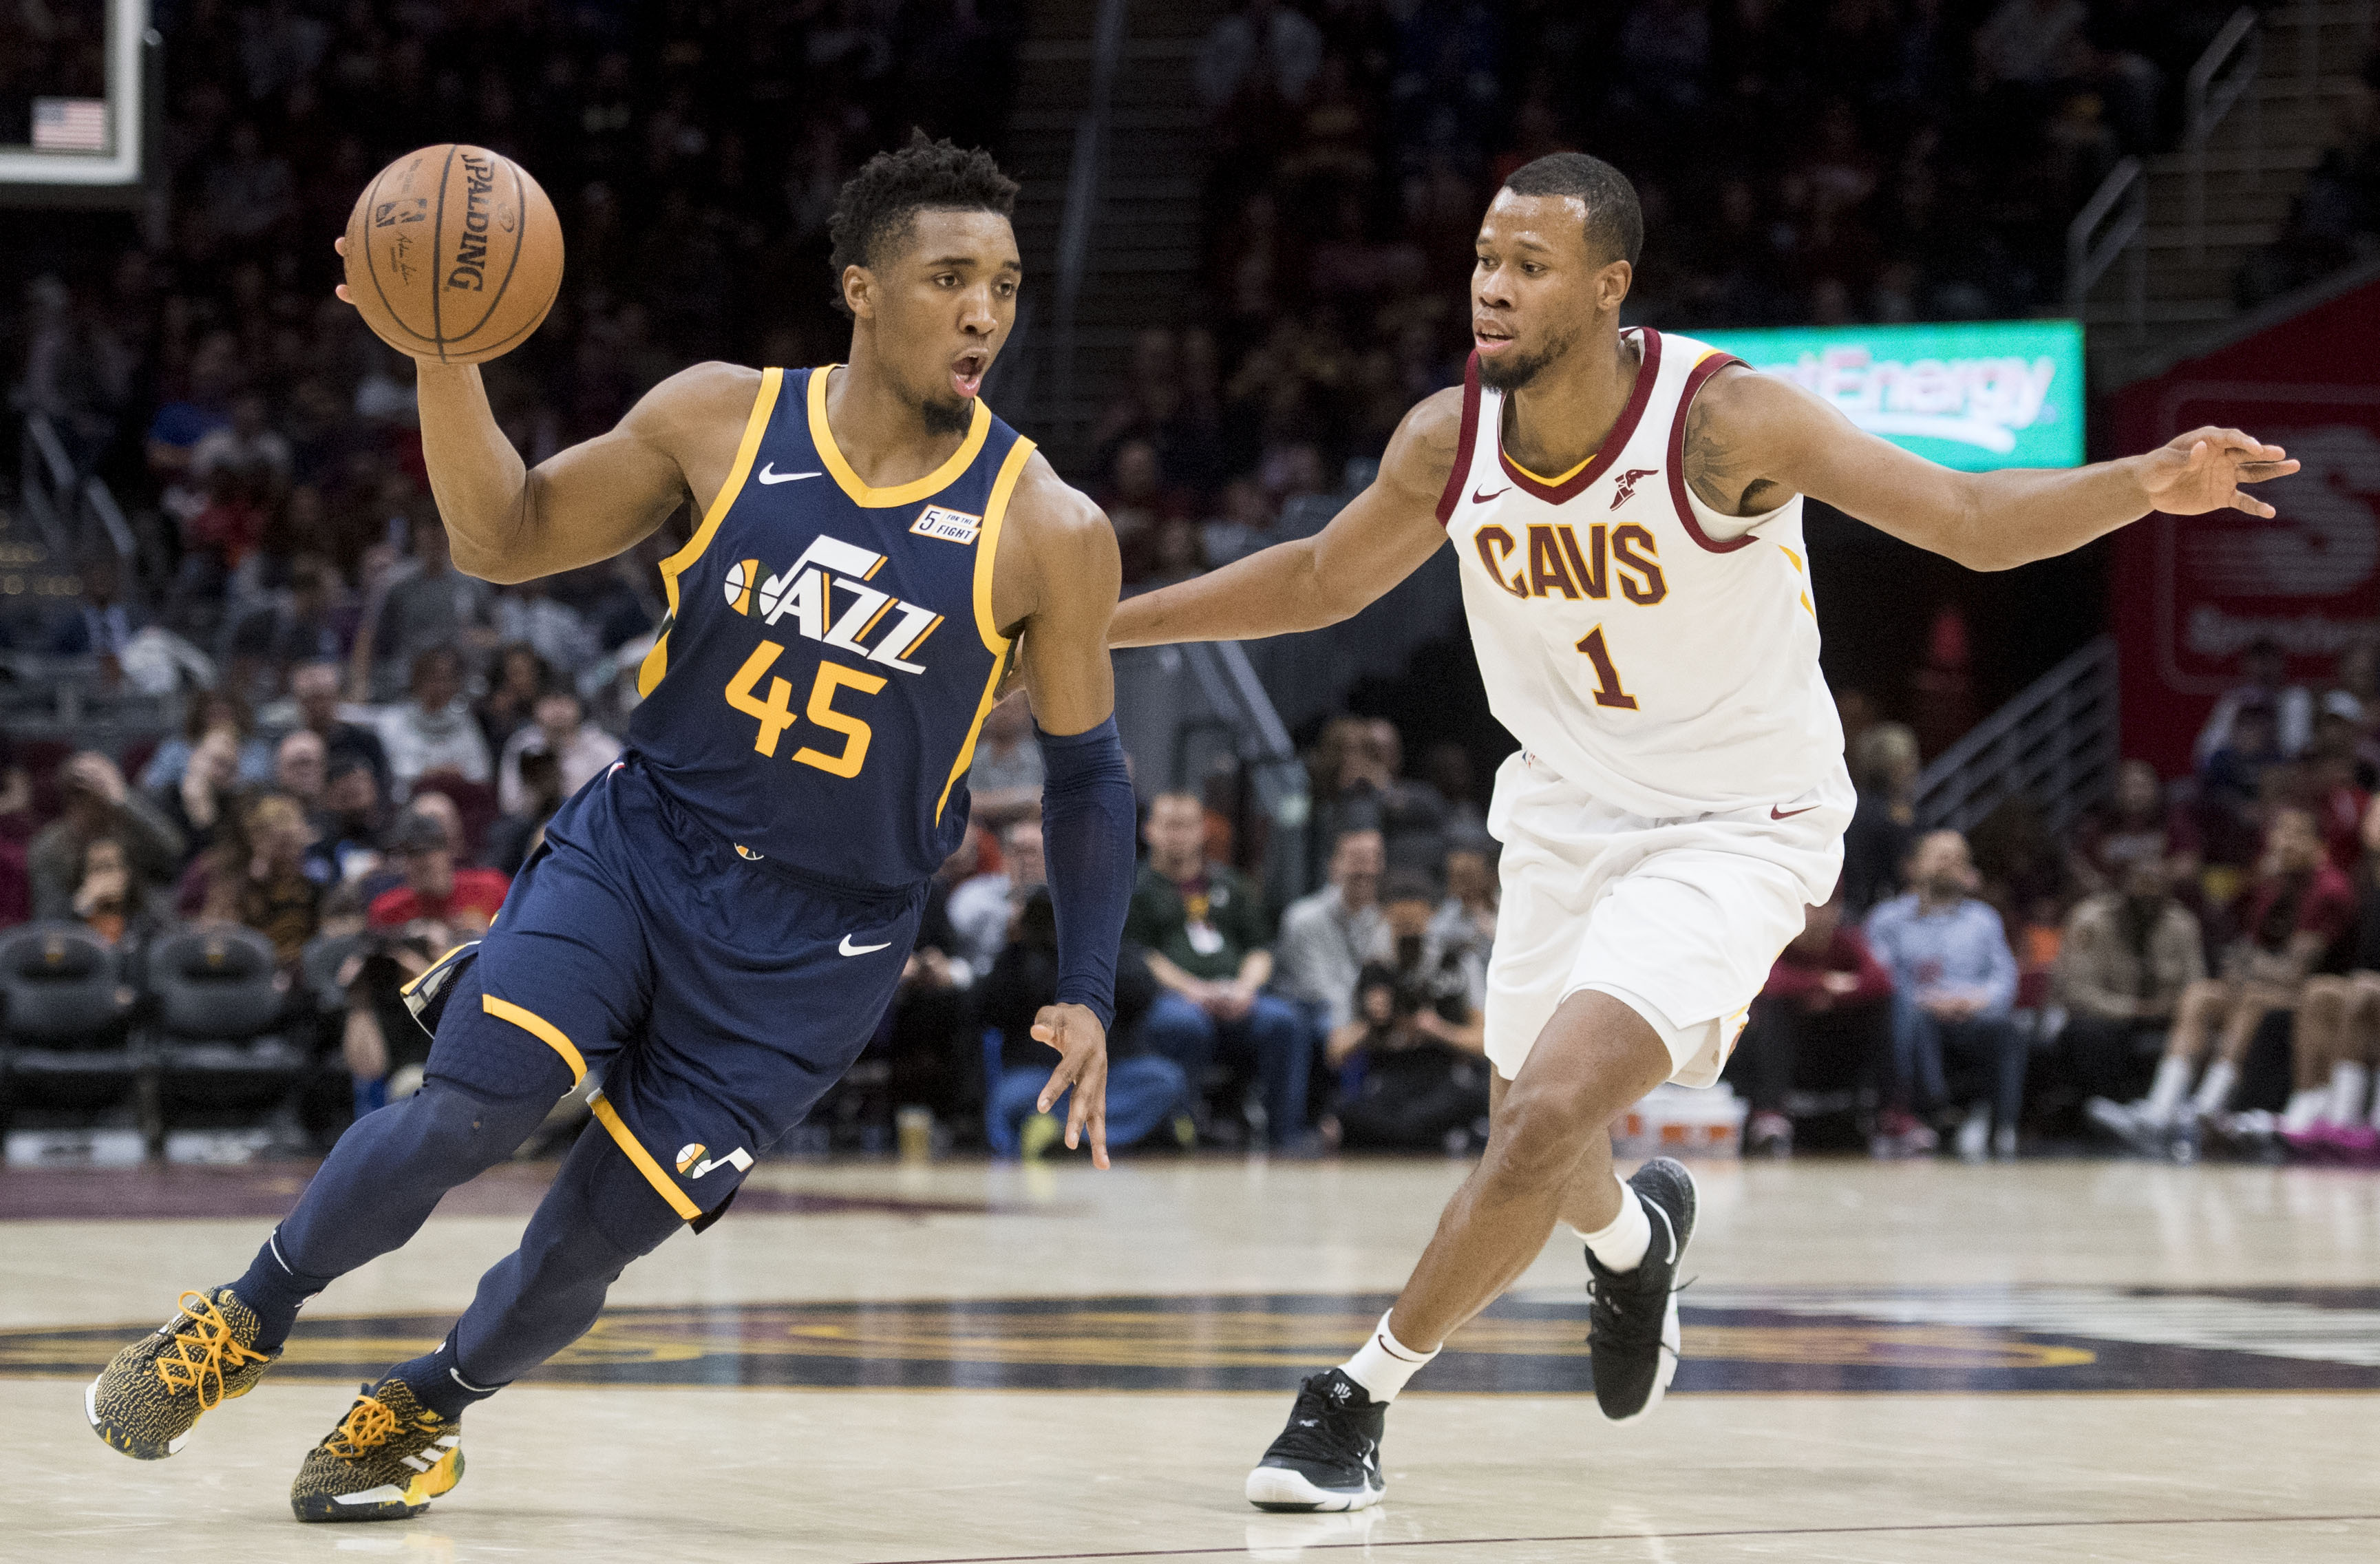 cc4e9024e49 Donovan Mitchell leads Utah Jazz to victory over the Cleveland Cavaliers